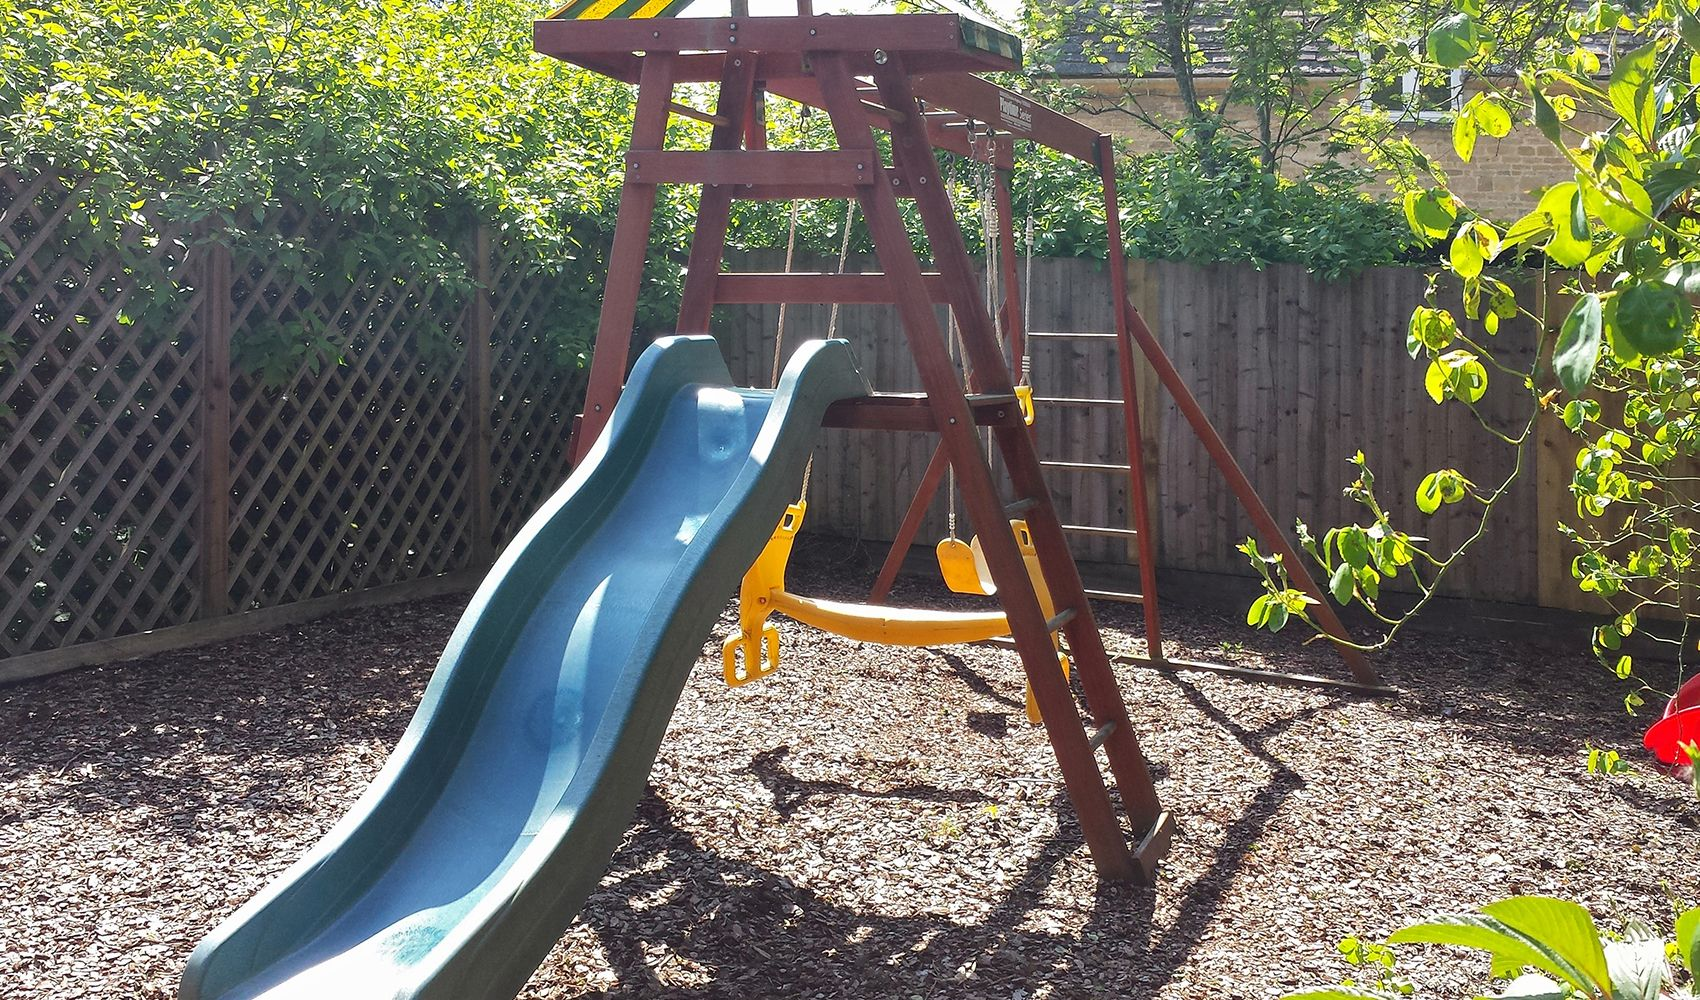 There's a child's play corner with a swing and seesaw (shared with Shipton)